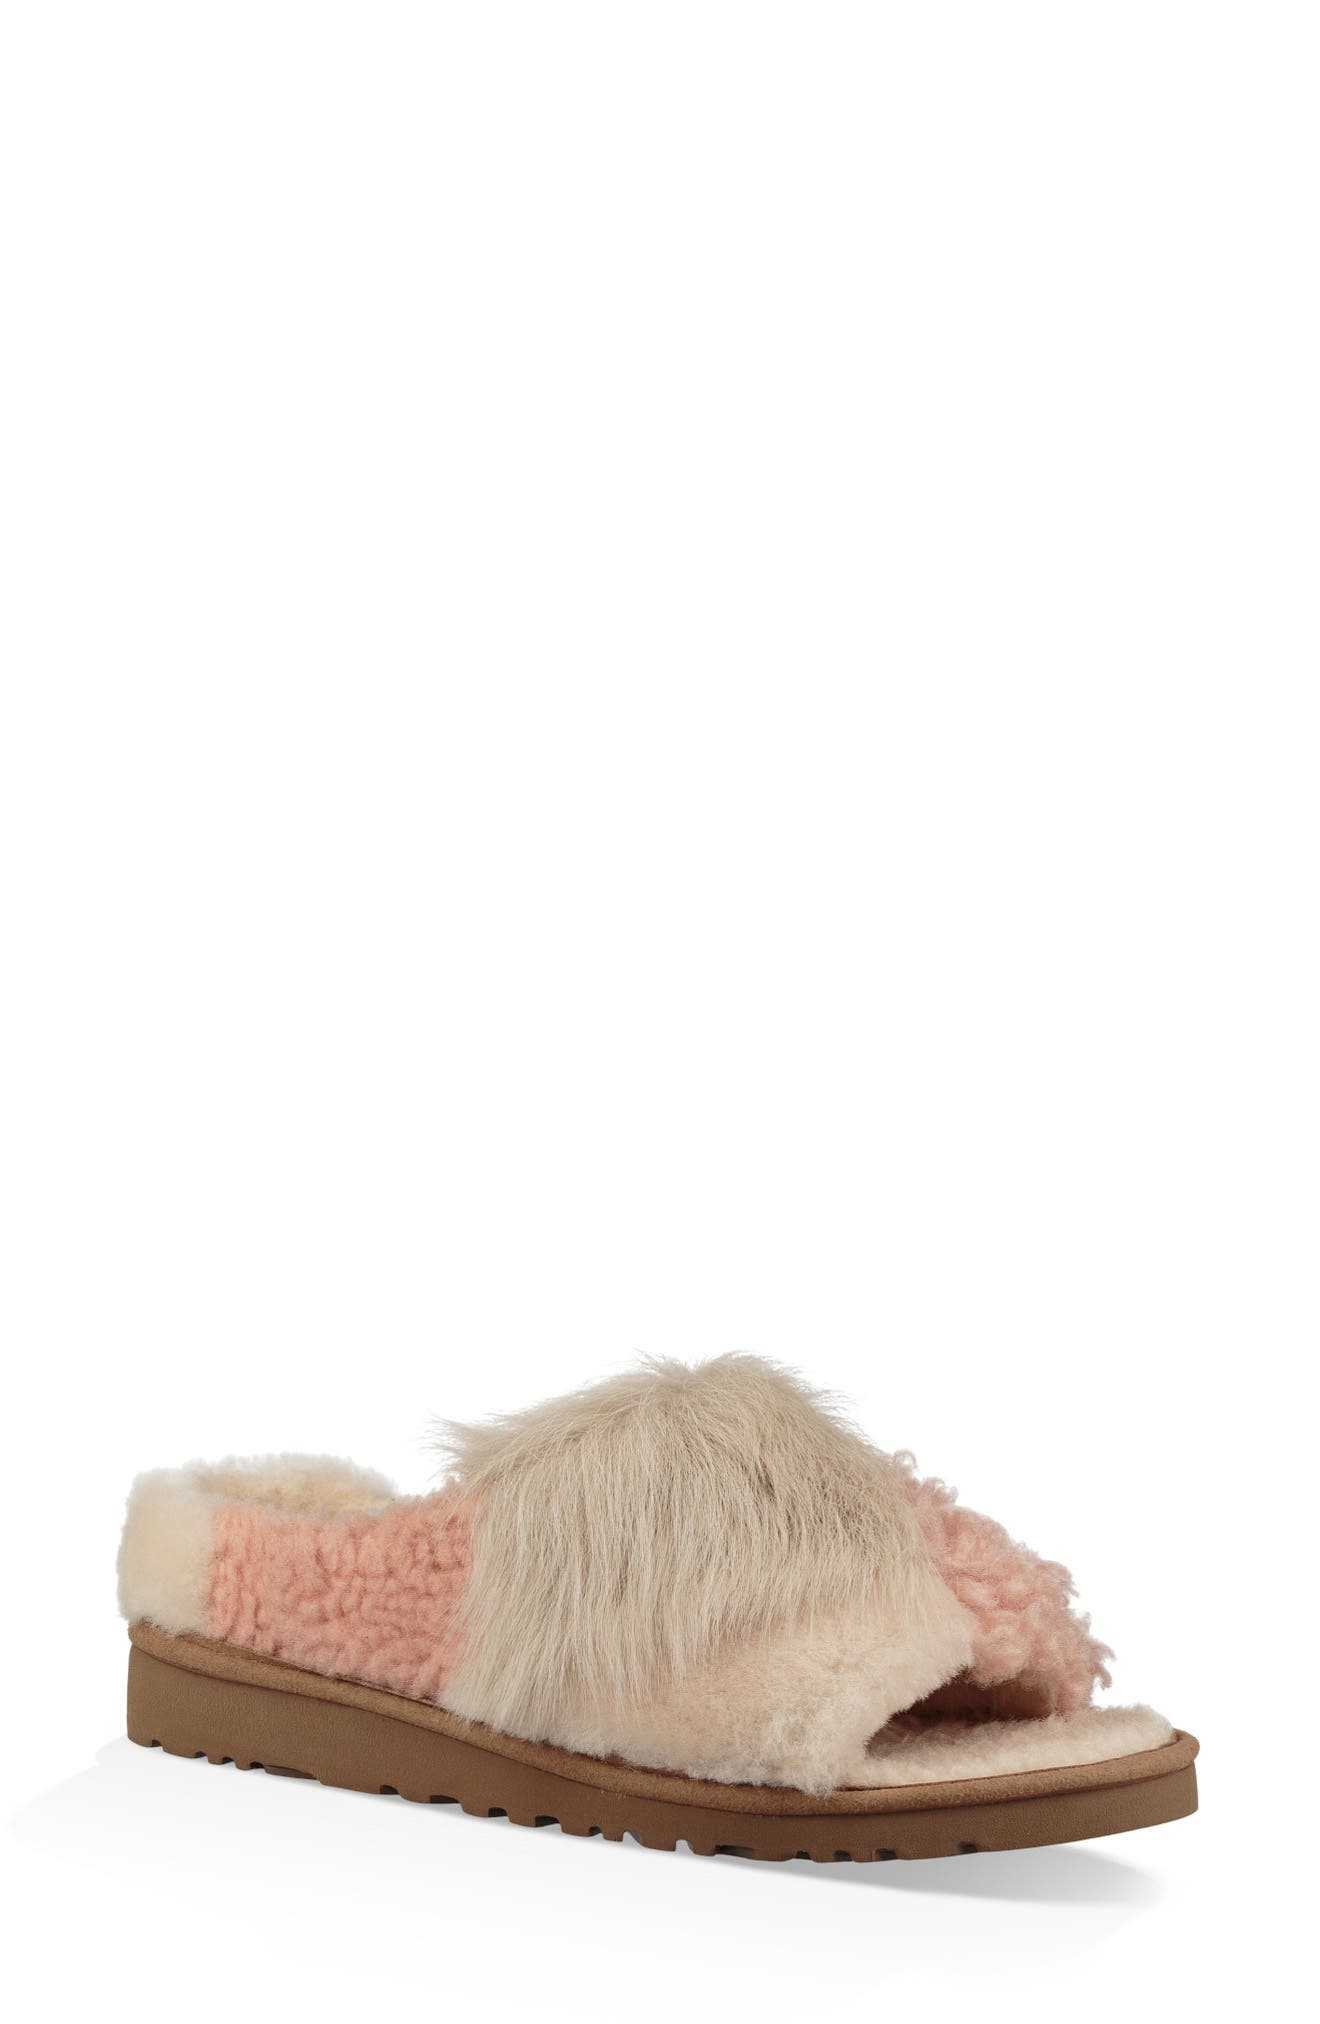 Patchwork Fluff Slipper,                             Main thumbnail 1, color,                             CHESTNUT